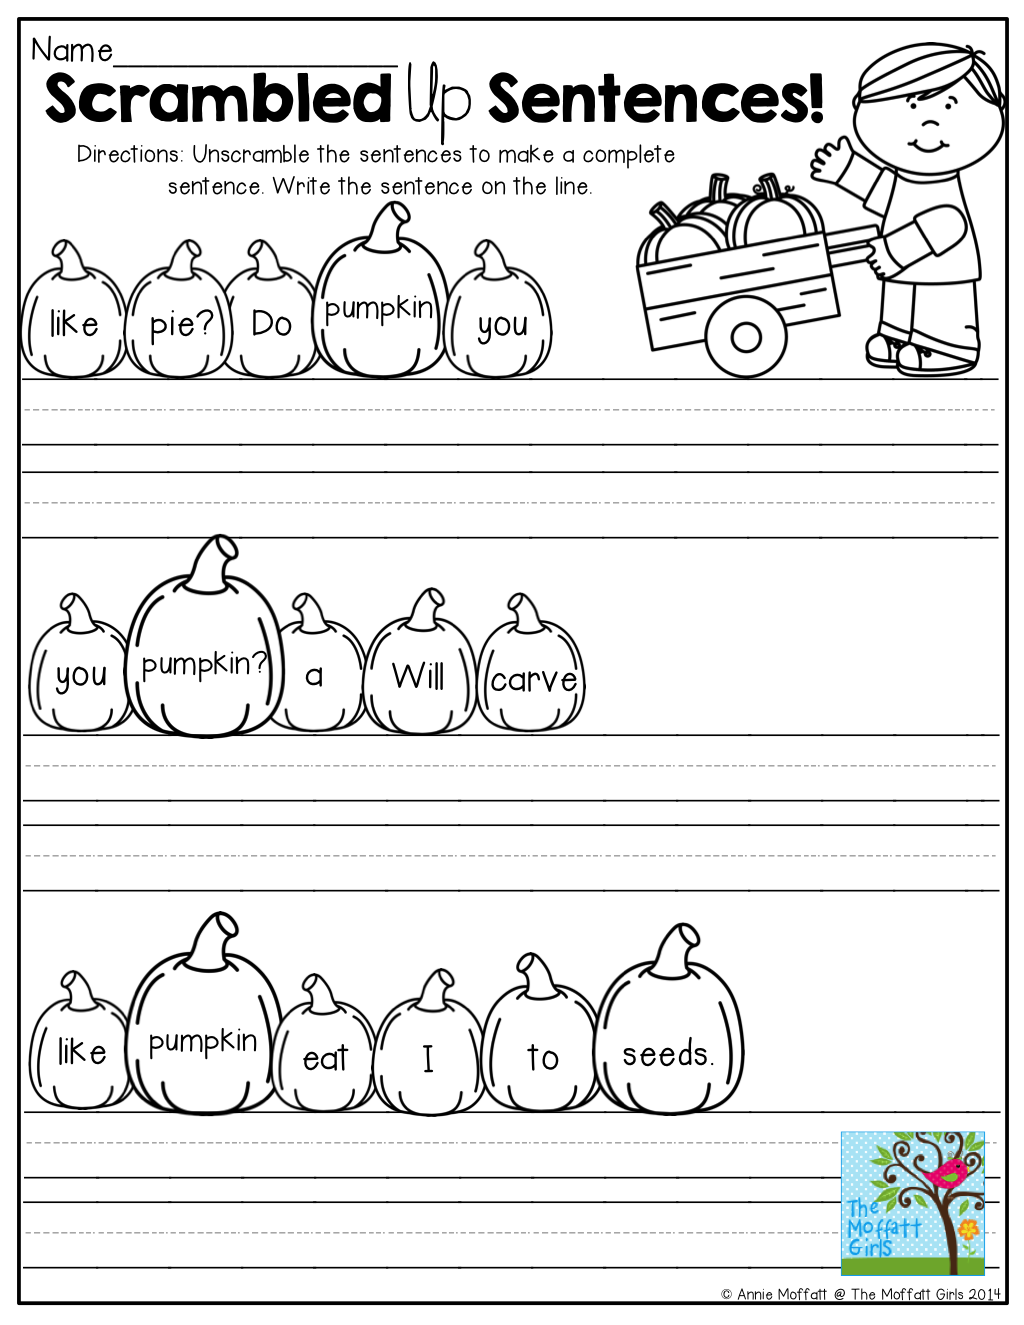 100 Unscramble Sentences Worksheet Scrambled Up With